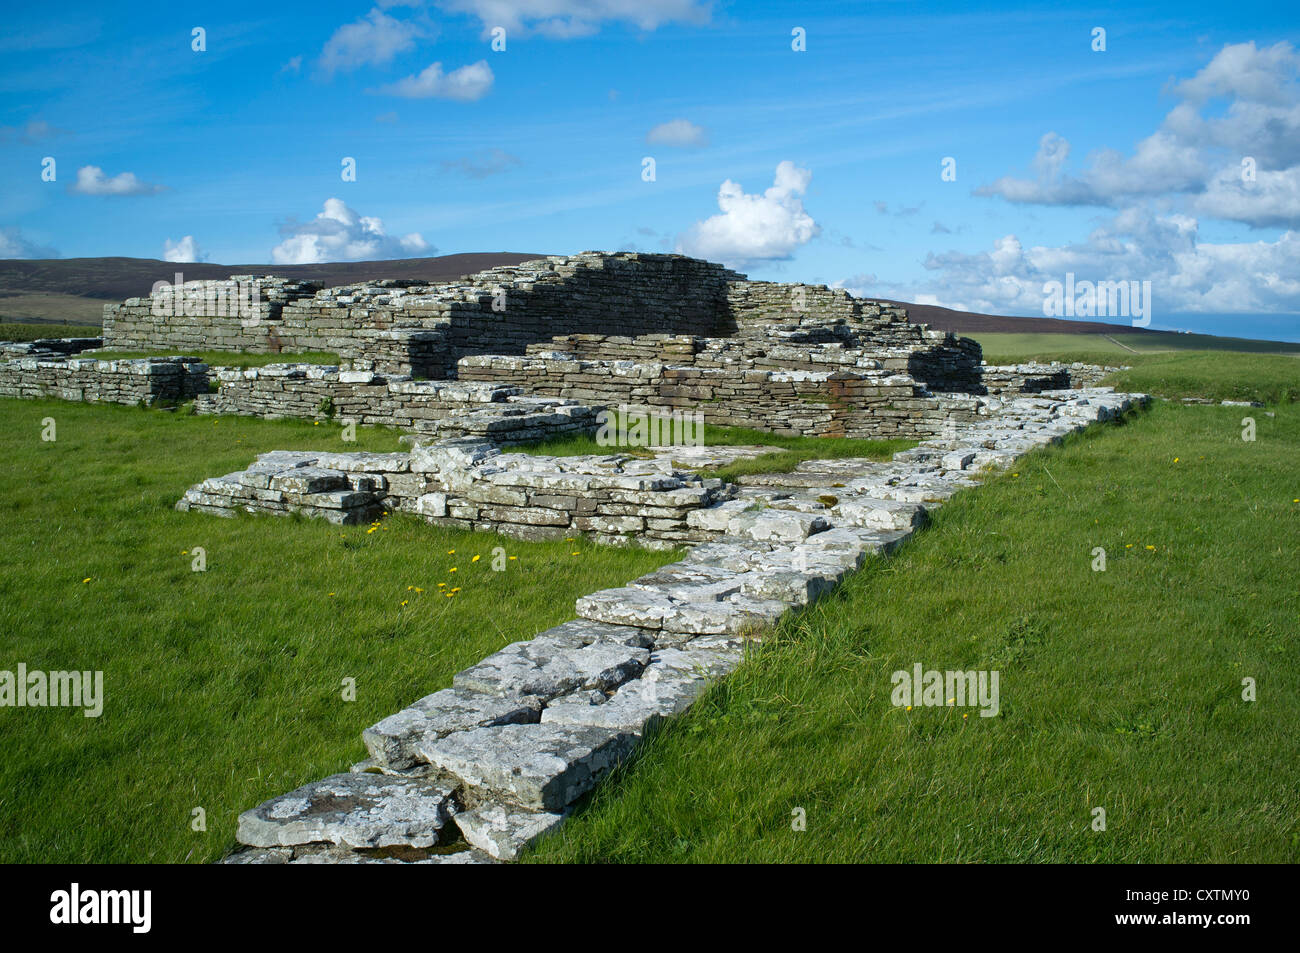 dh Cubbie Roos Castle WYRE ORKNEY Viking ruins norse castle archaeology vikings scotland - Stock Image